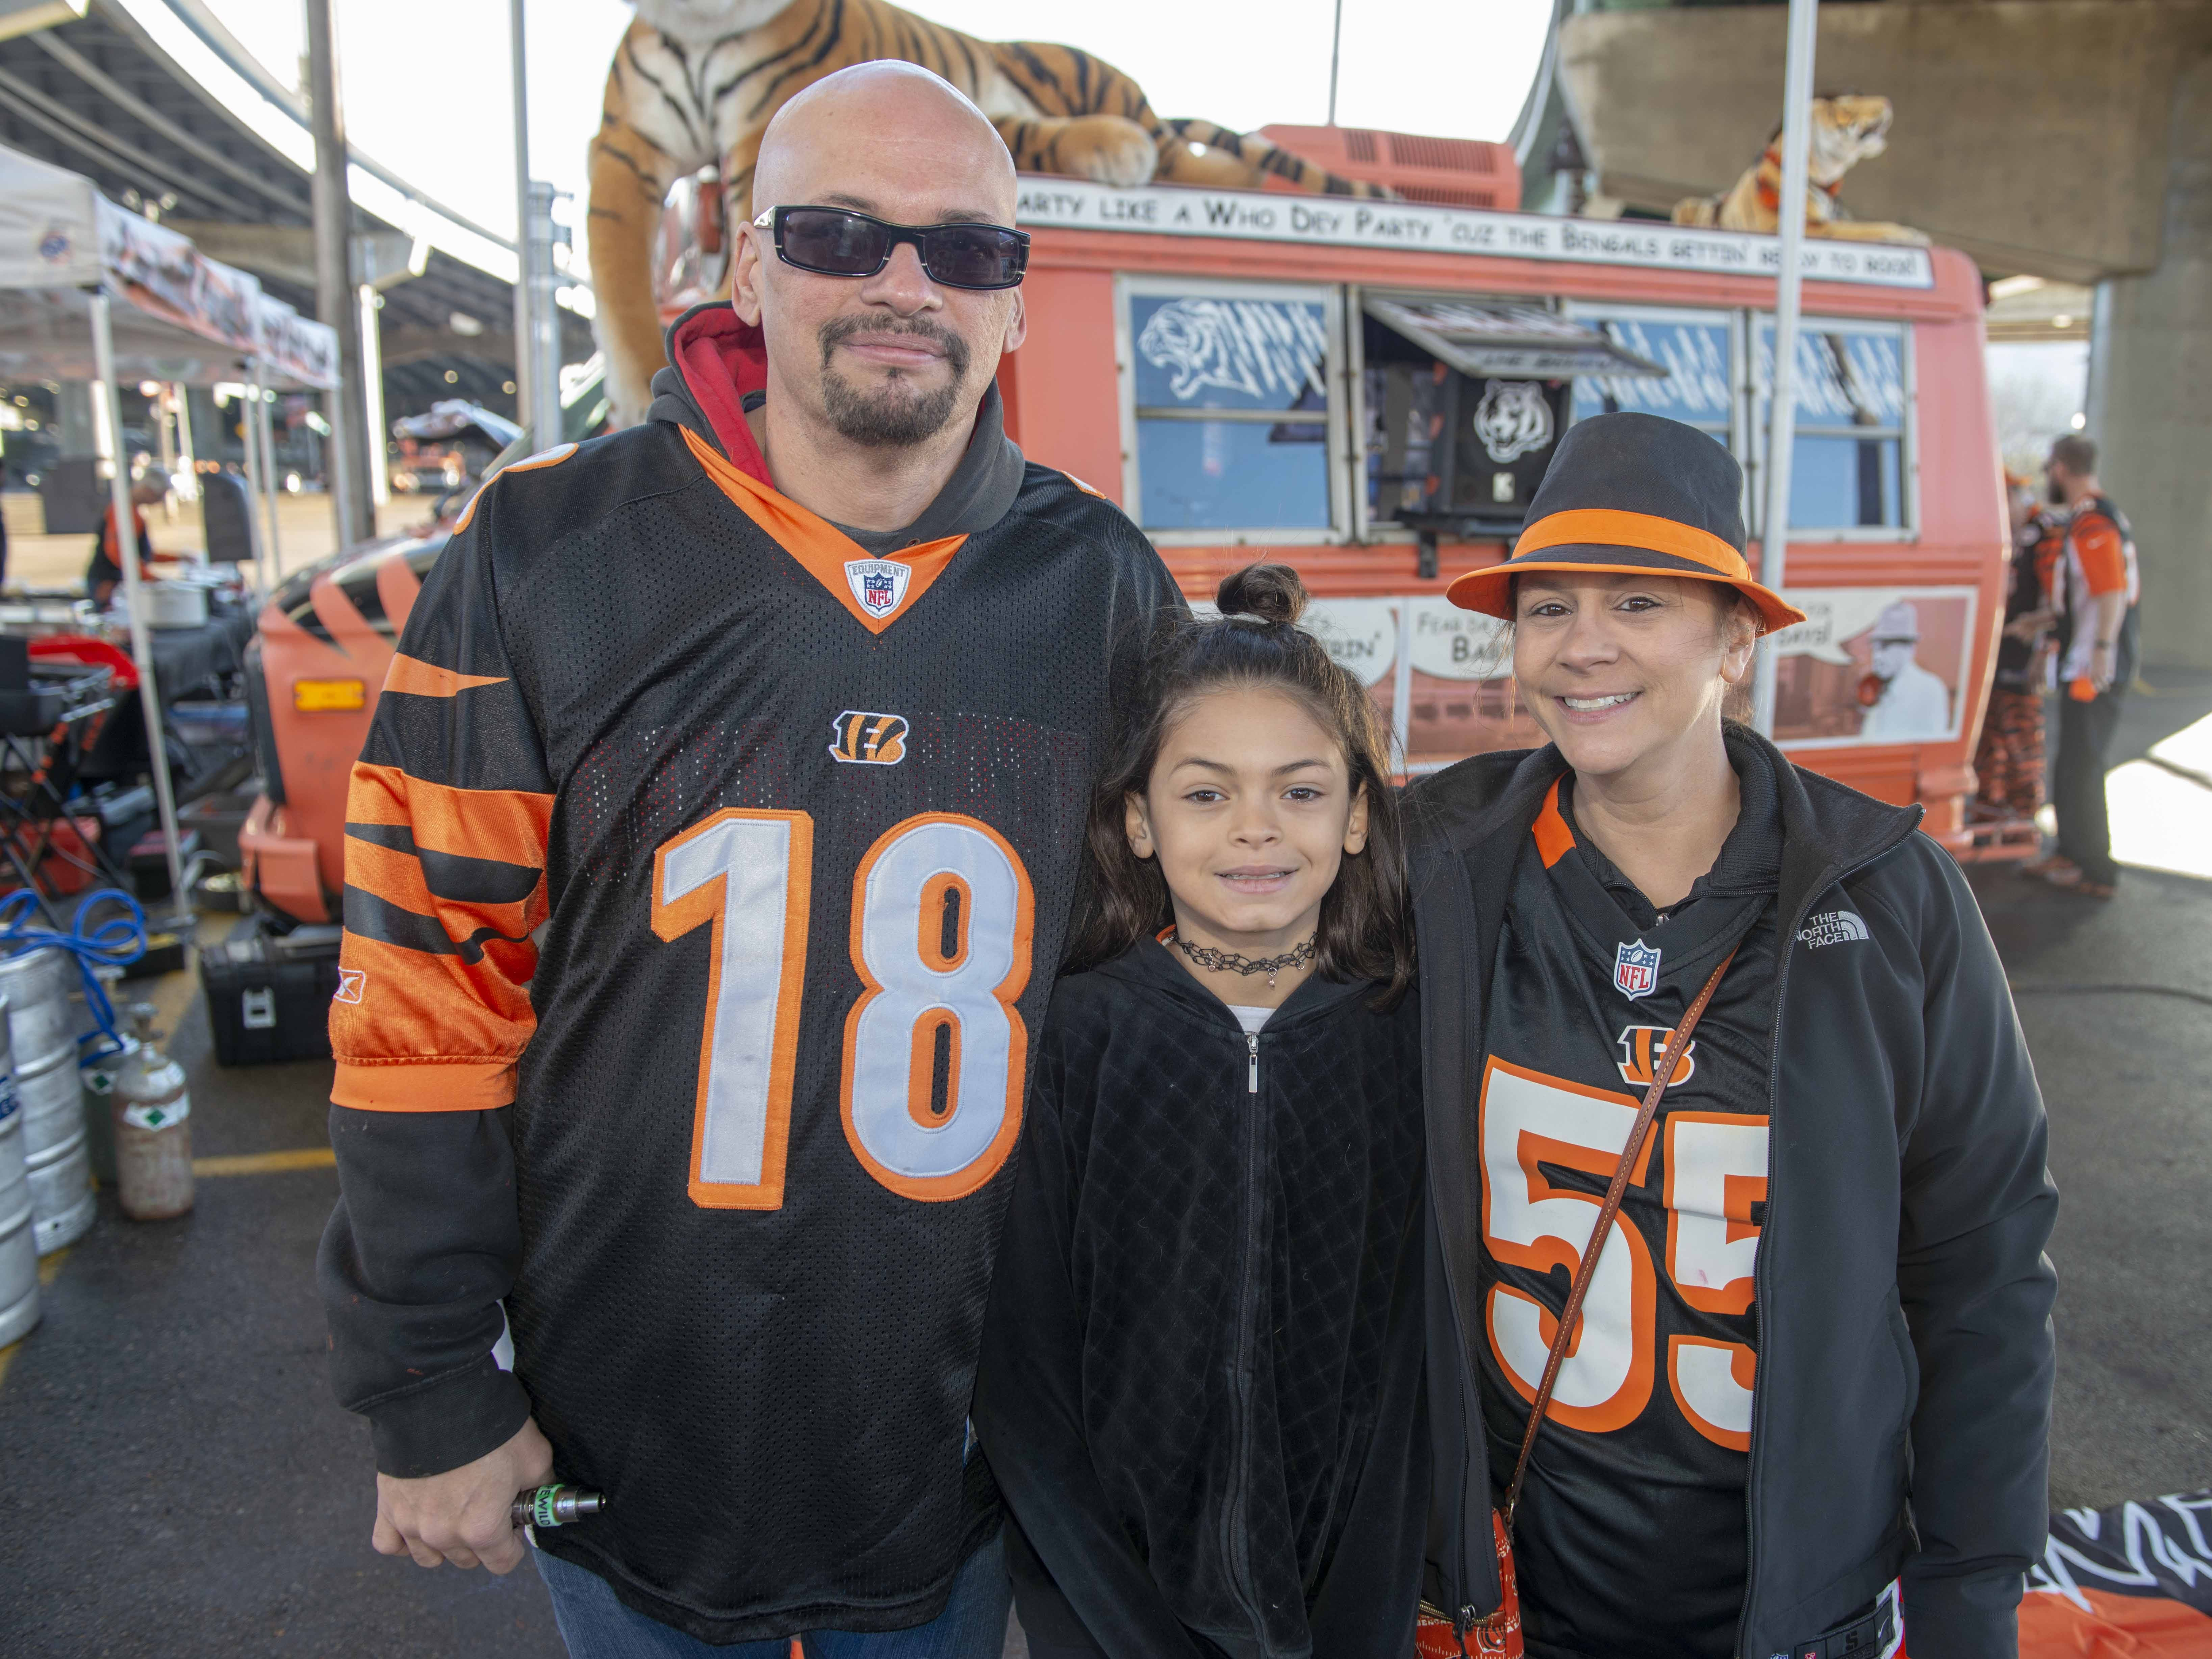 Cincinnati Bengals fans showed up for tailgating parties as the Cincinnati Bengals hosted the Denver Broncos at Paul Brown Stadium Sunday, December 2, 2018. Corey Glancy, Mariah Ravenscraft and Kasandra Glancy from Sharonville.